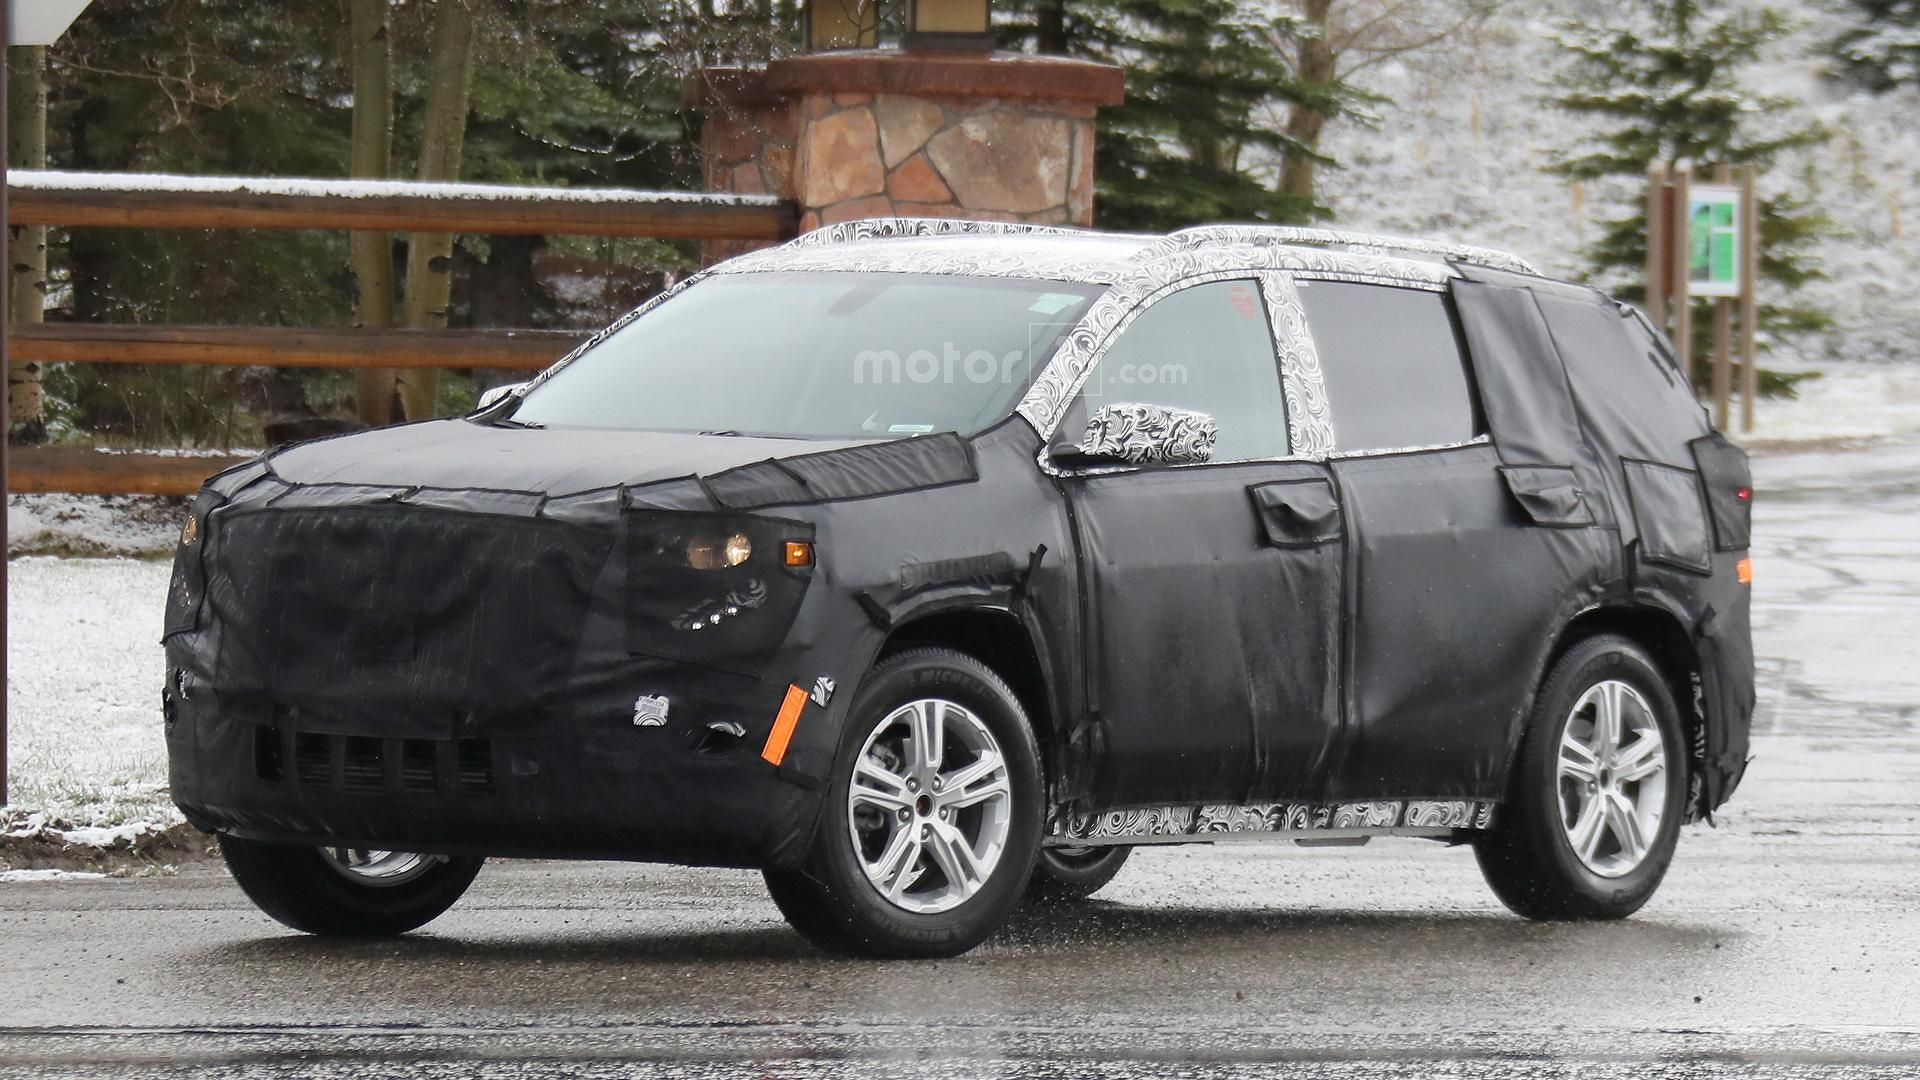 Used Gmc Terrain >> 2018 GMC Terrain spied ahead of a possible debut later this year